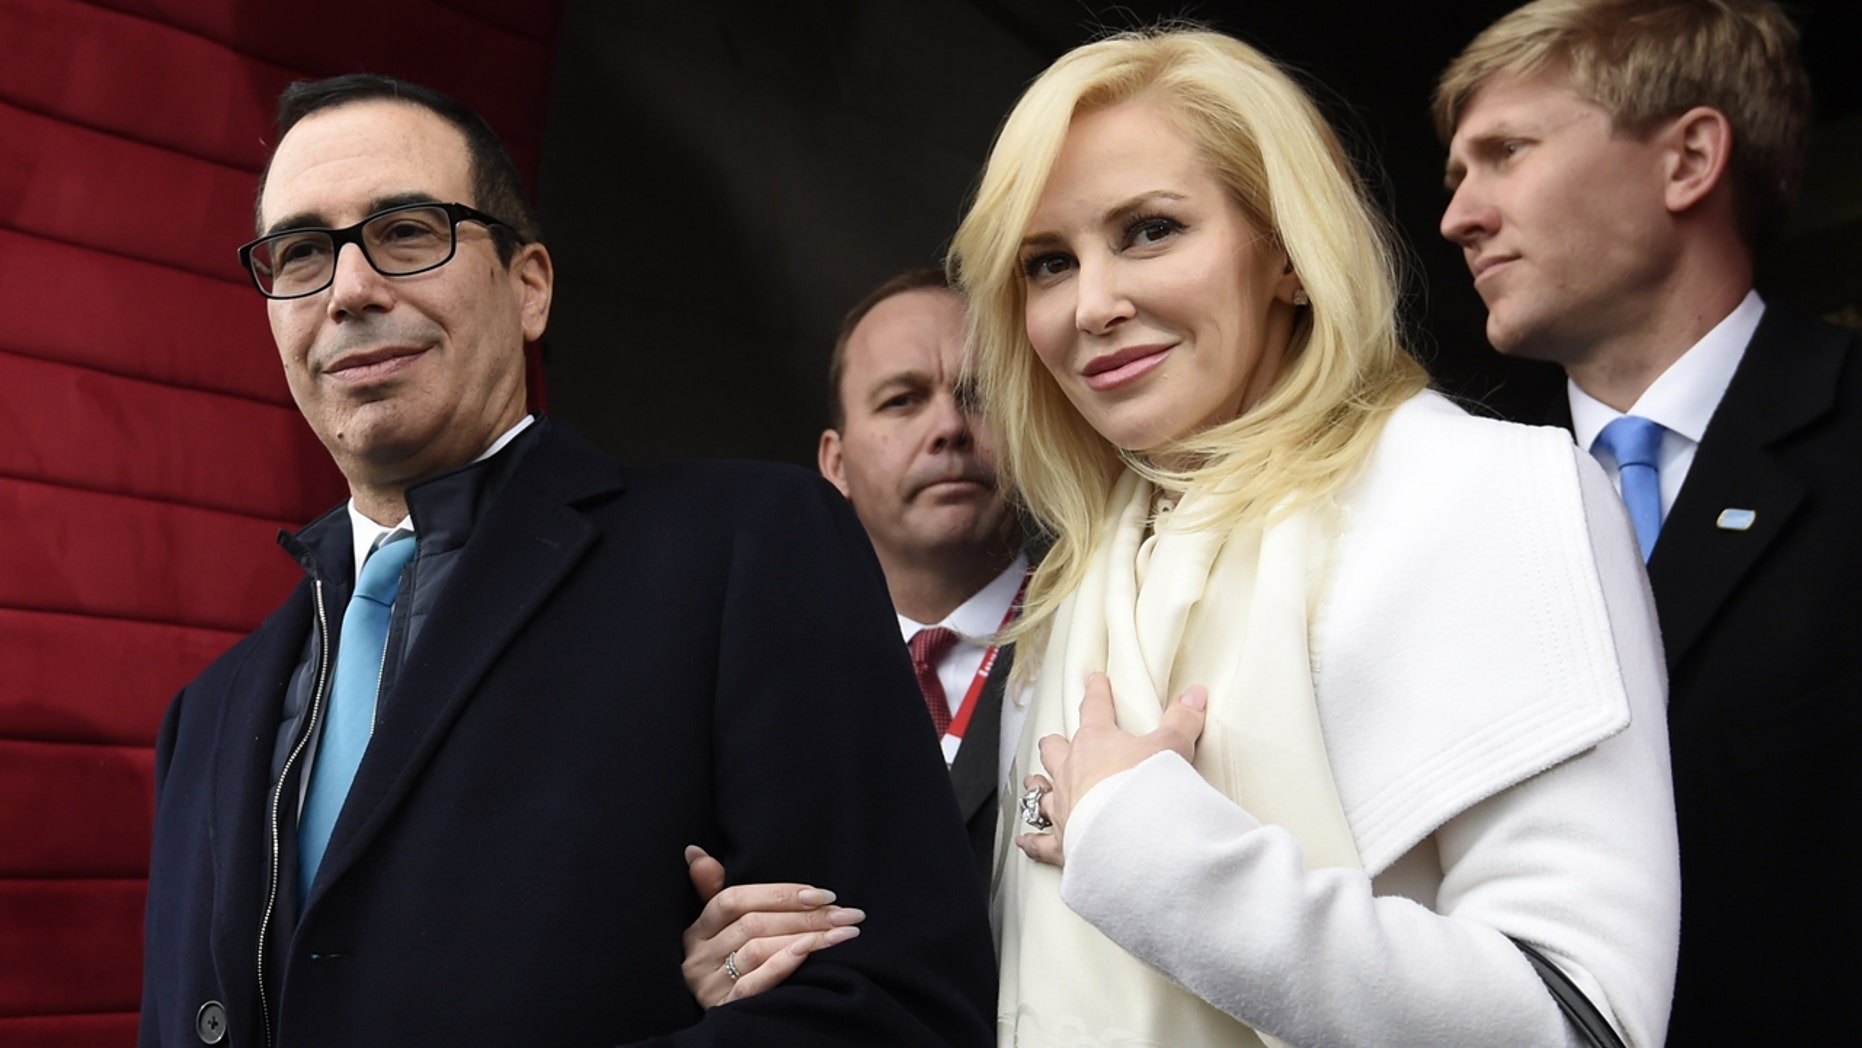 In this Friday, Jan. 20, 2017, file photo, Treasury Secretary-designate Stephen Mnuchin and his fiancee, Louise Linton, arrive on Capitol Hill in Washington, for the presidential inauguration of Donald Trump.